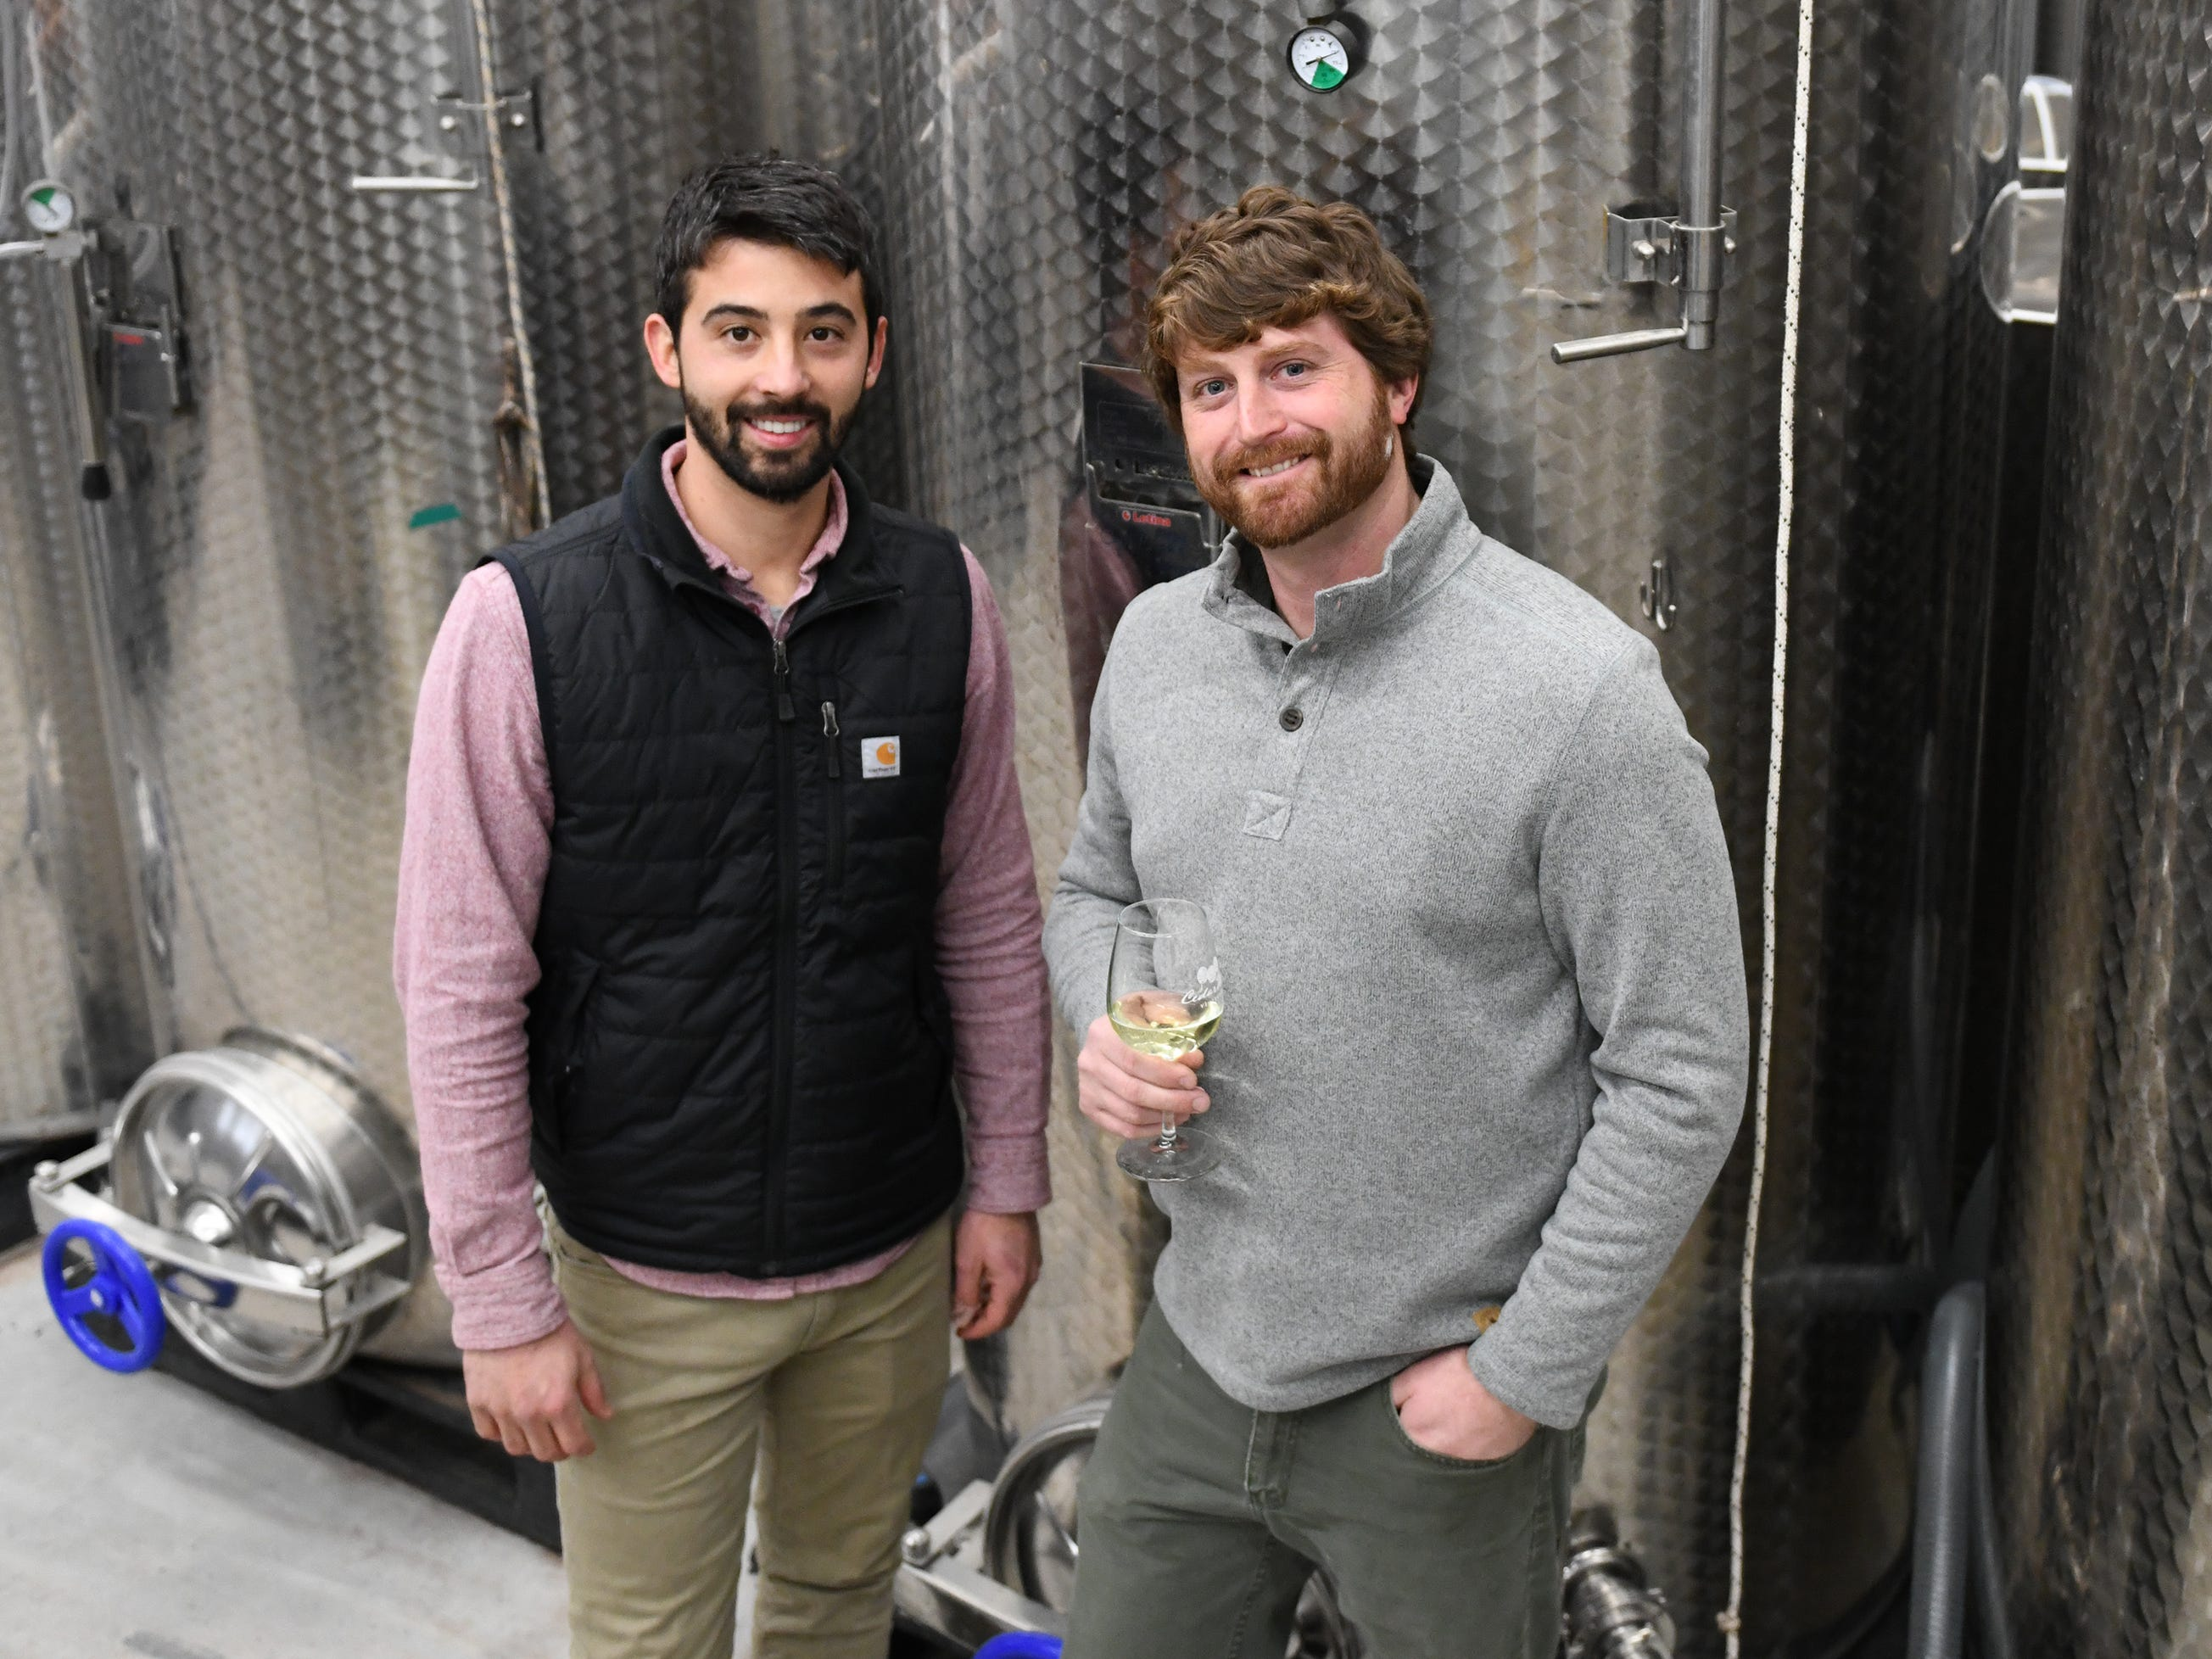 Cedar Rose Vineyards managing partners Steven Becker (left) and Dustin Tarpine stand next to stainless steel wine vats at their Rosenhayn facility on Tuesday, January 8, 2019.